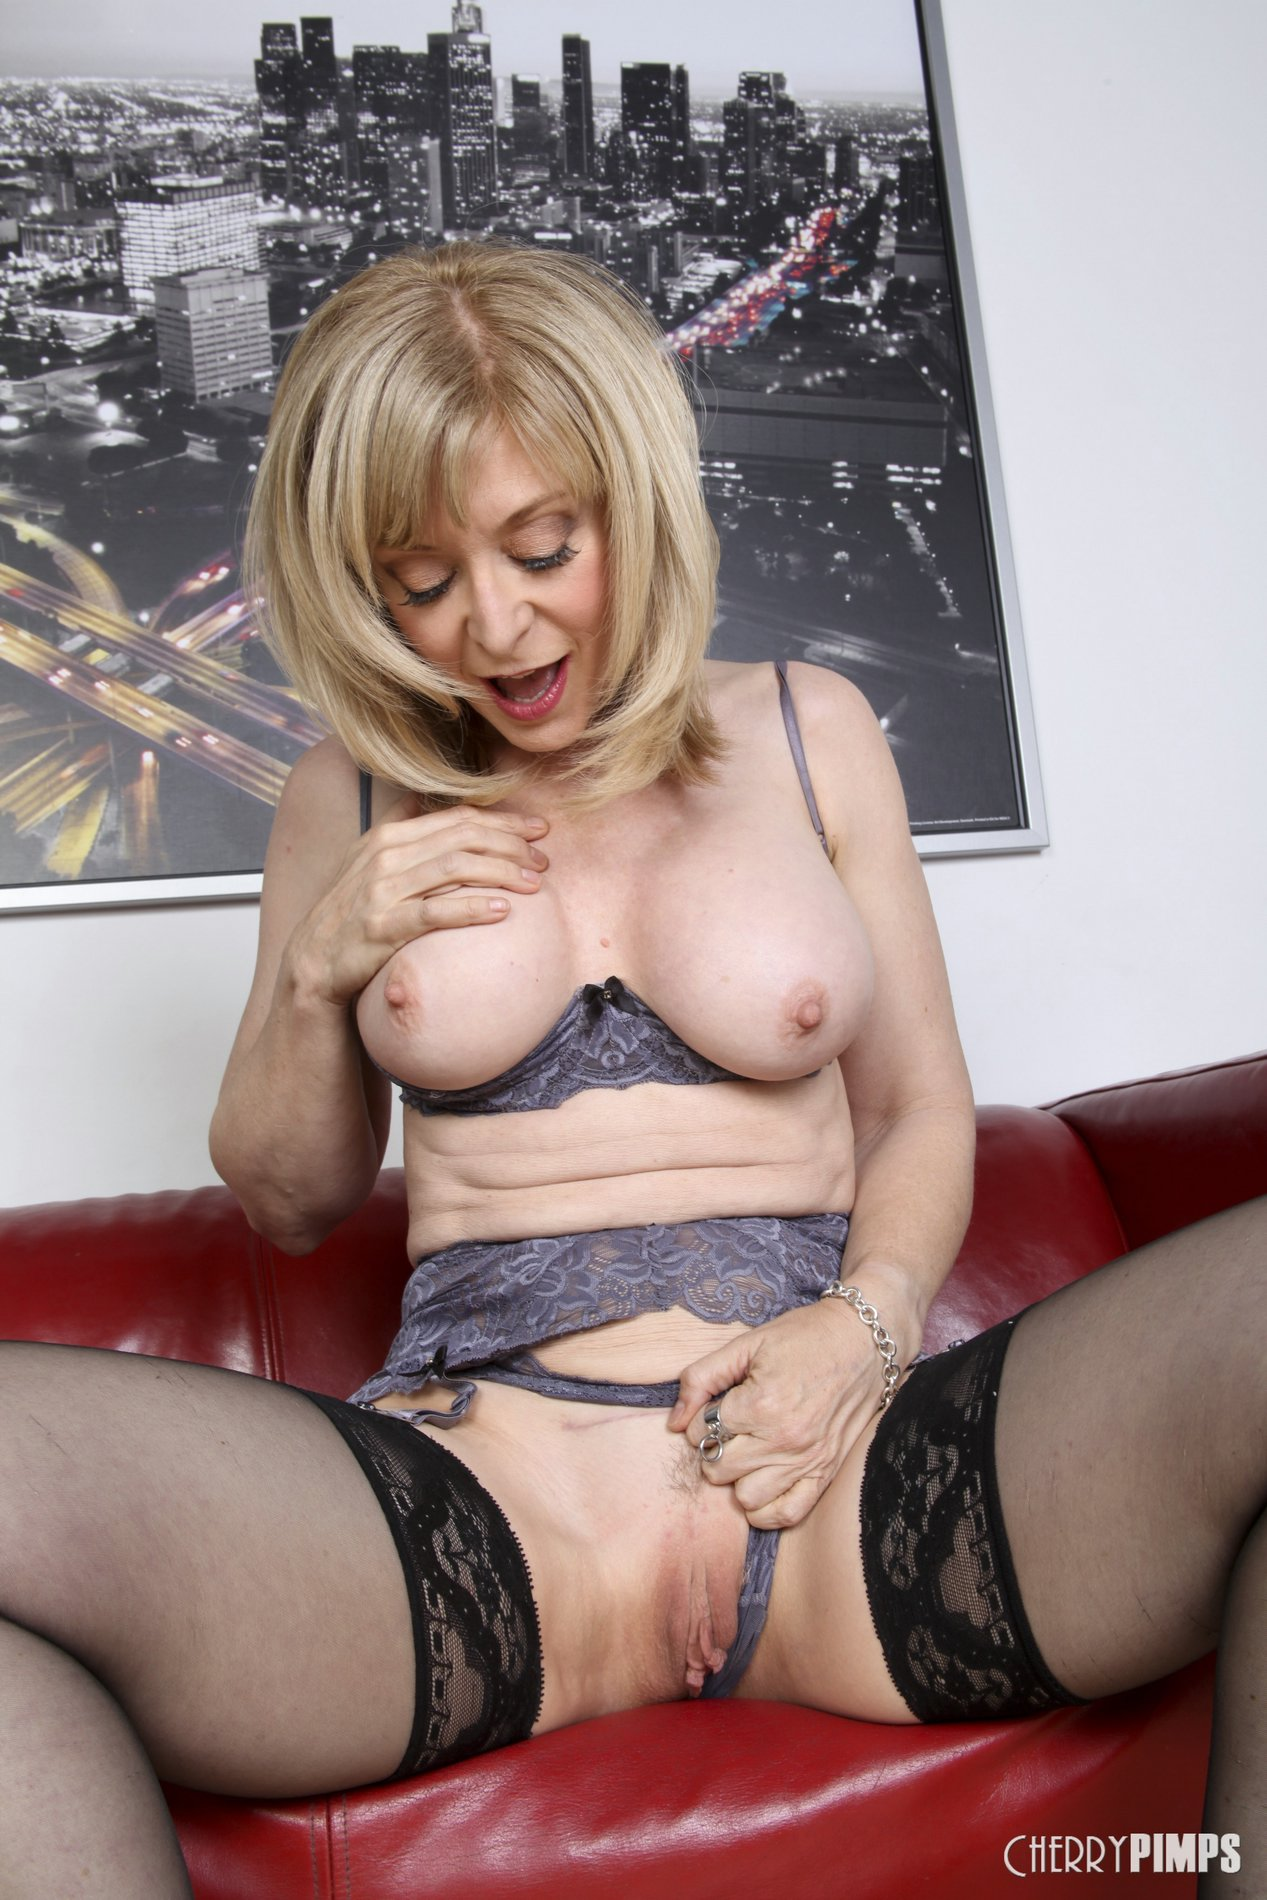 Nina Hartley In Black Stockings And Heels Poses For Camera - My Pornstar Book-7114